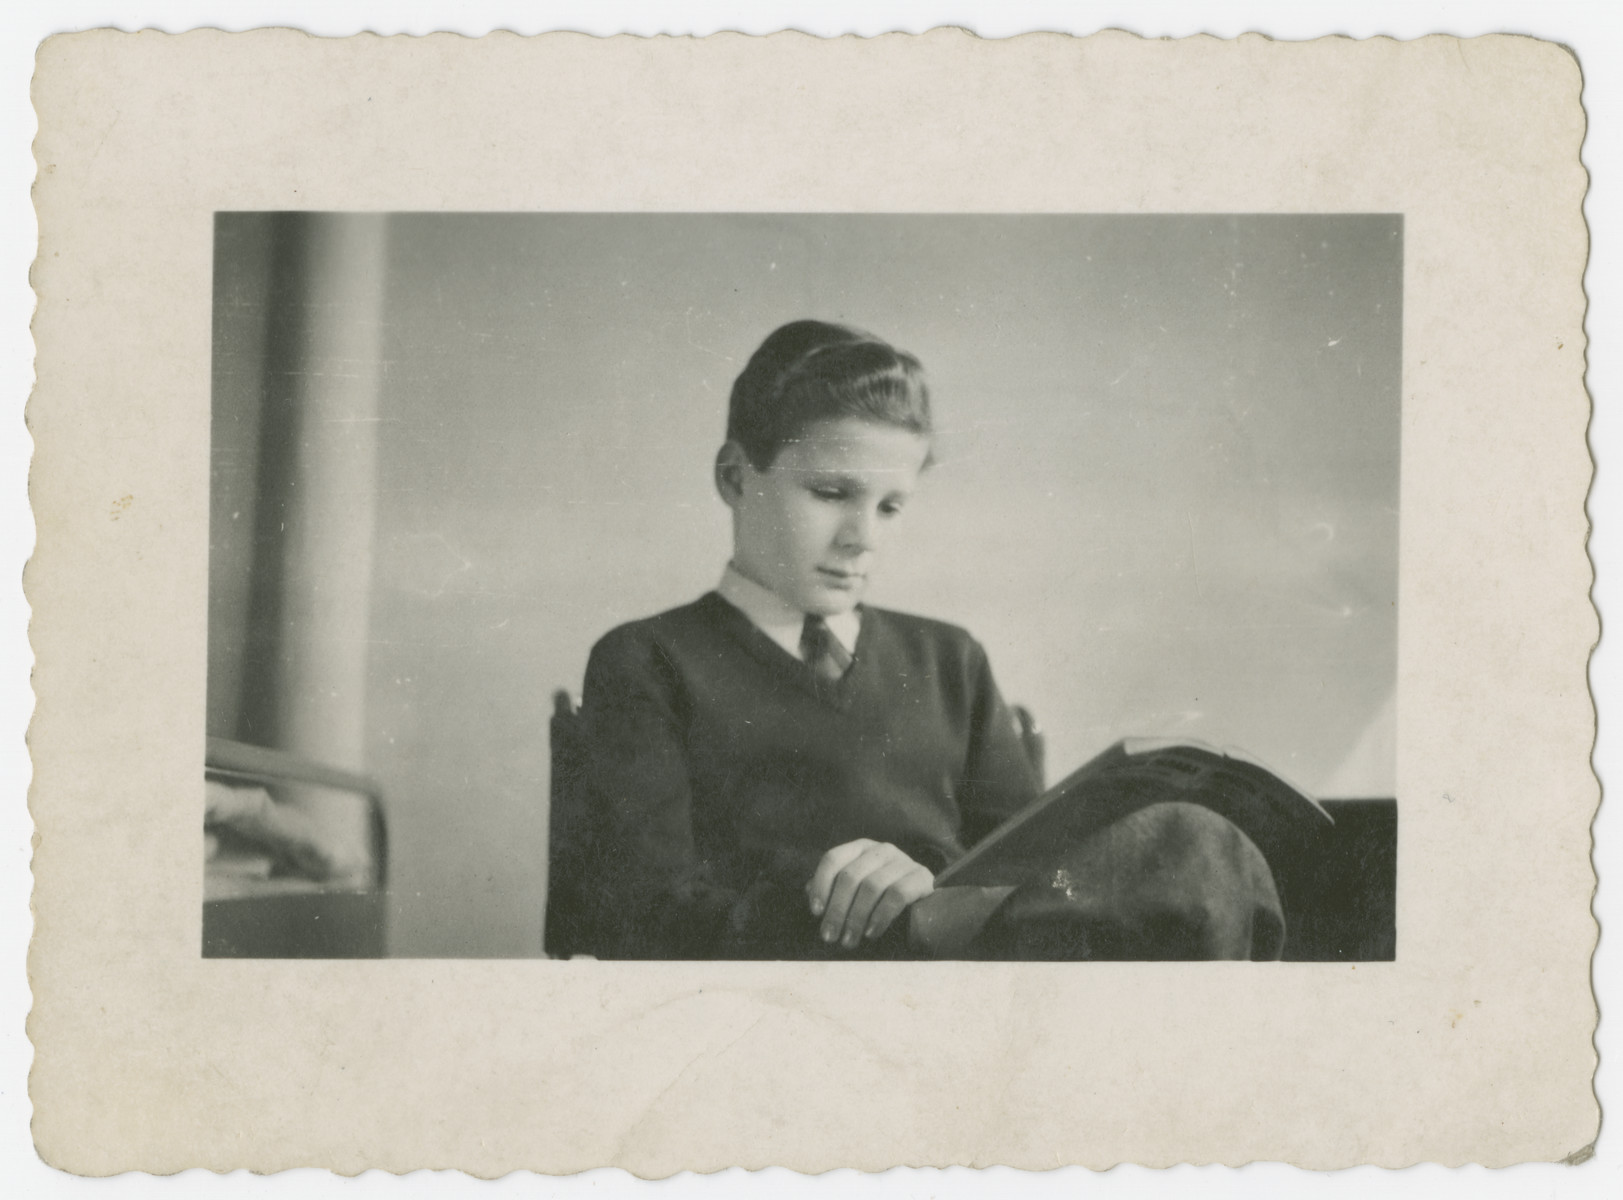 Child survivor, Misa Grunwald, reads a magazine after his return to Prague.